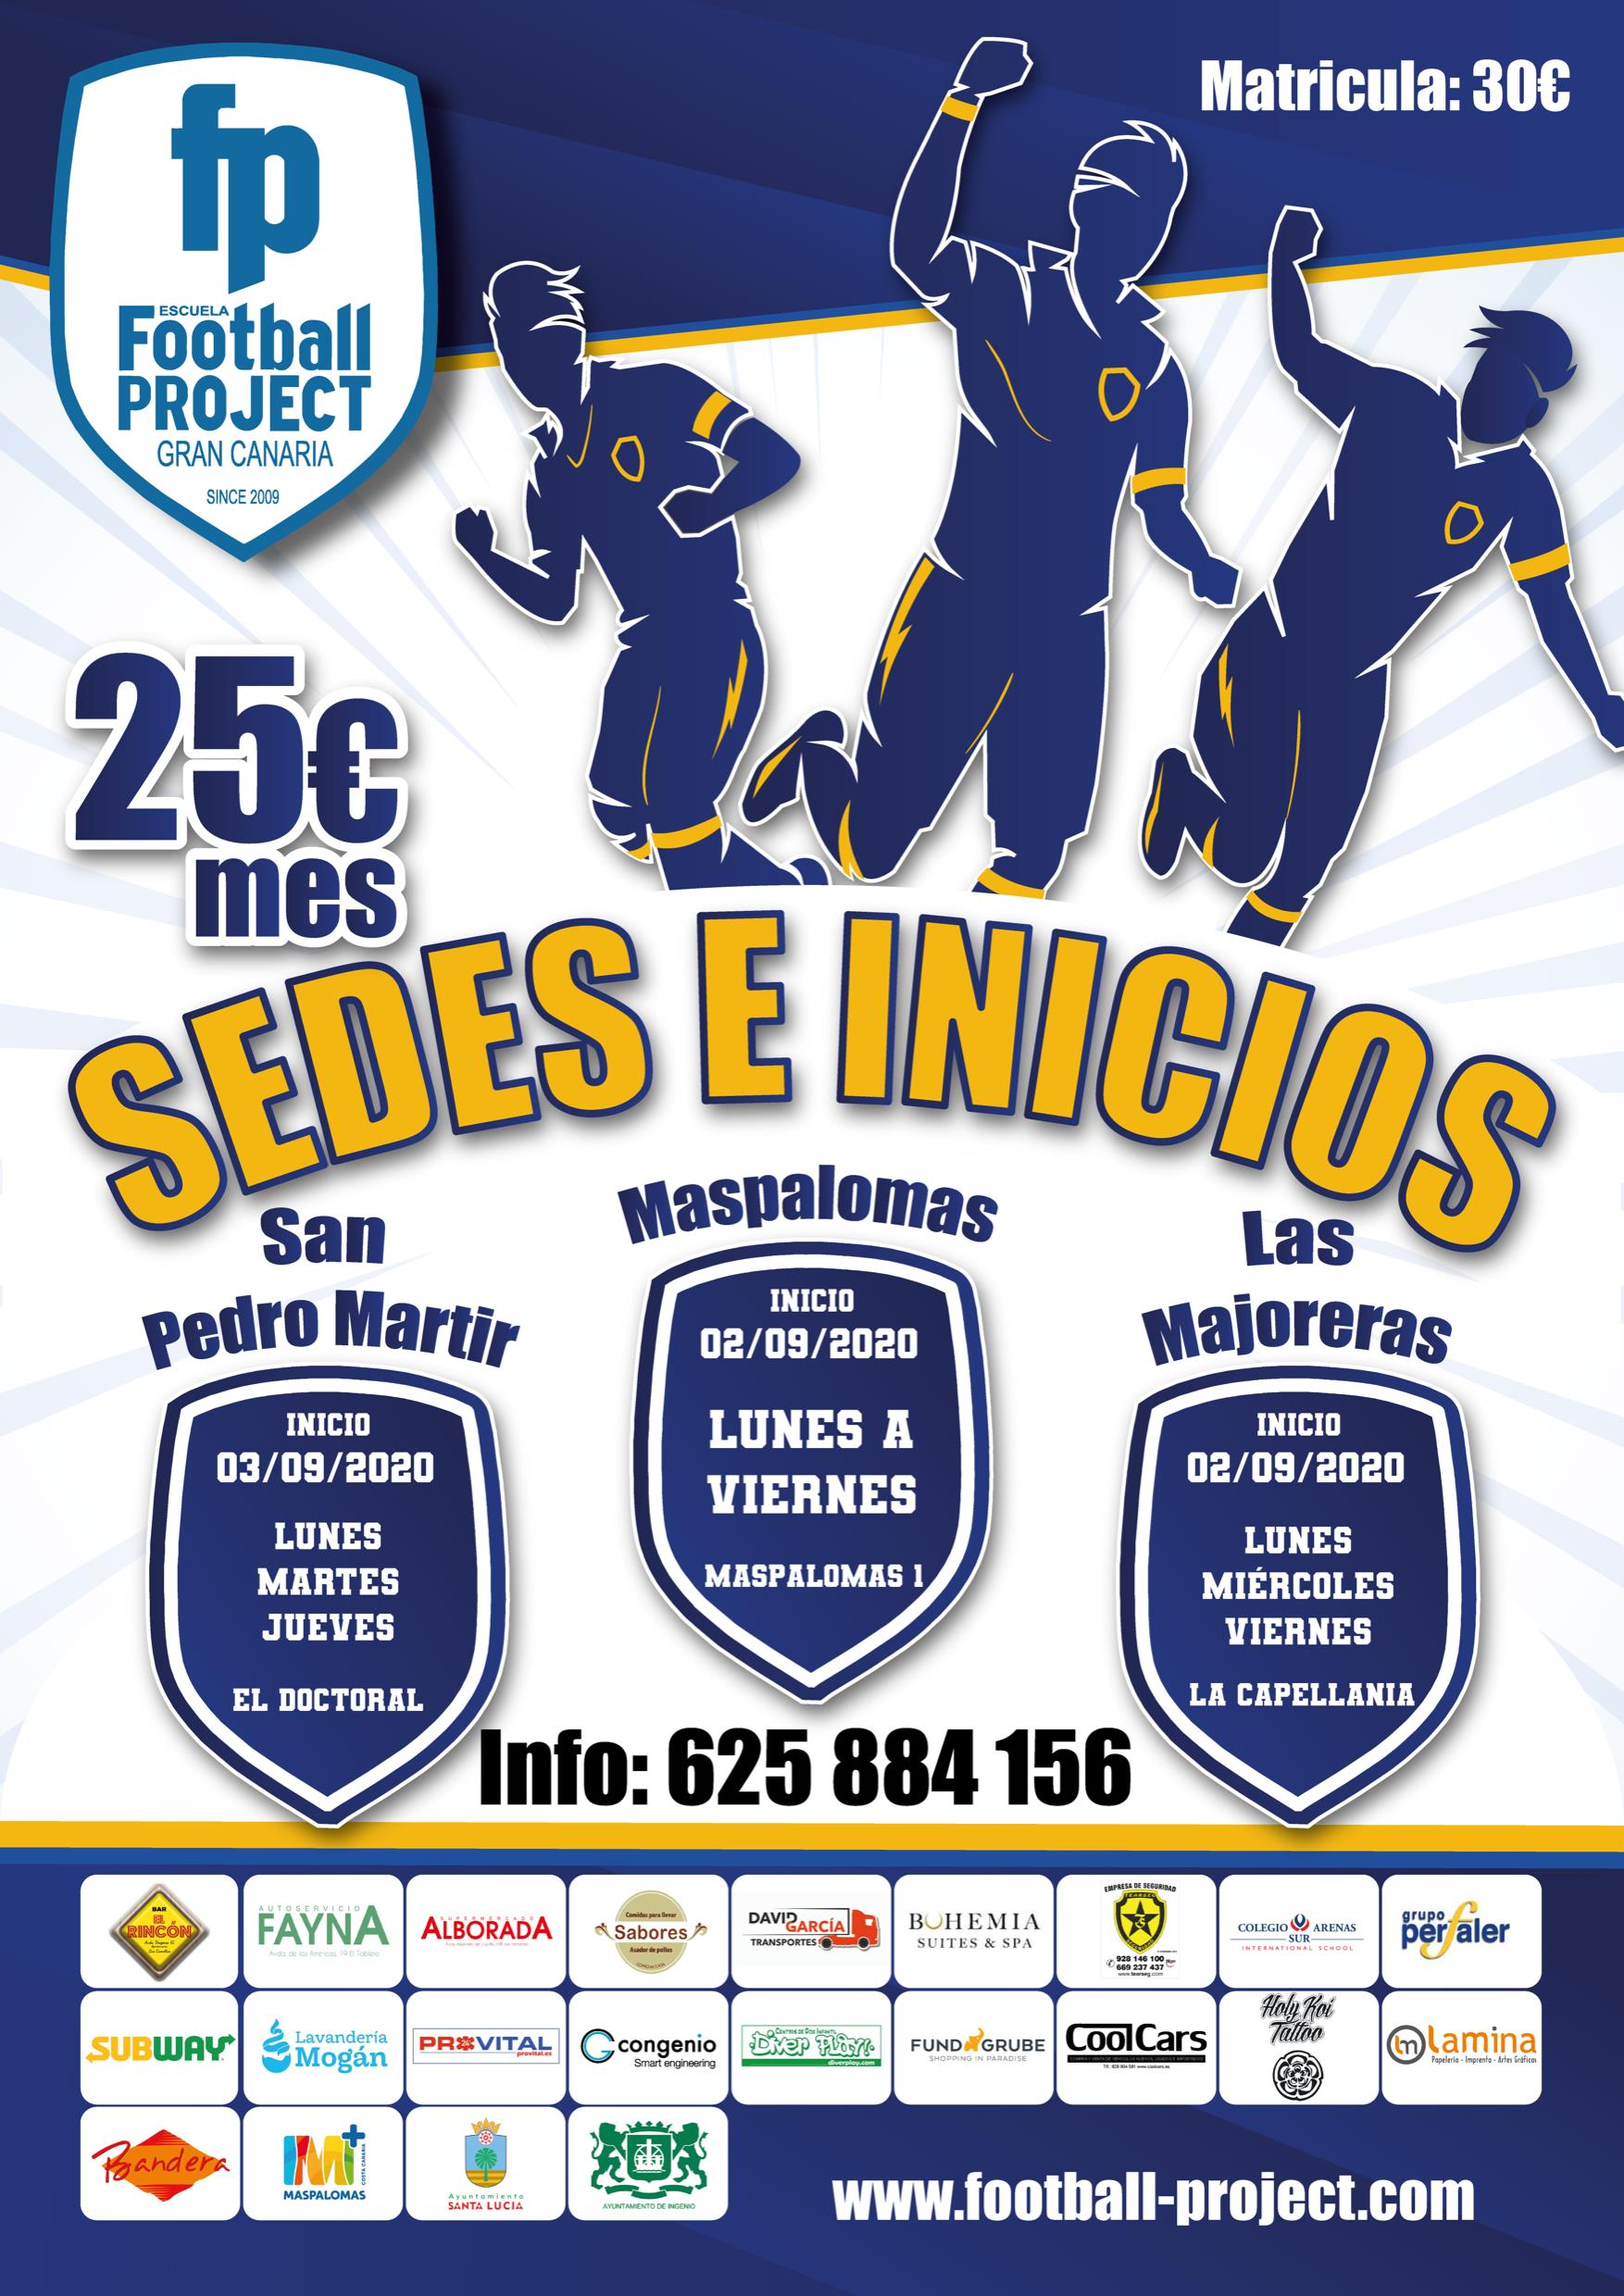 sdsSEDES E INICIOS DE FOOTBALL PROJECT